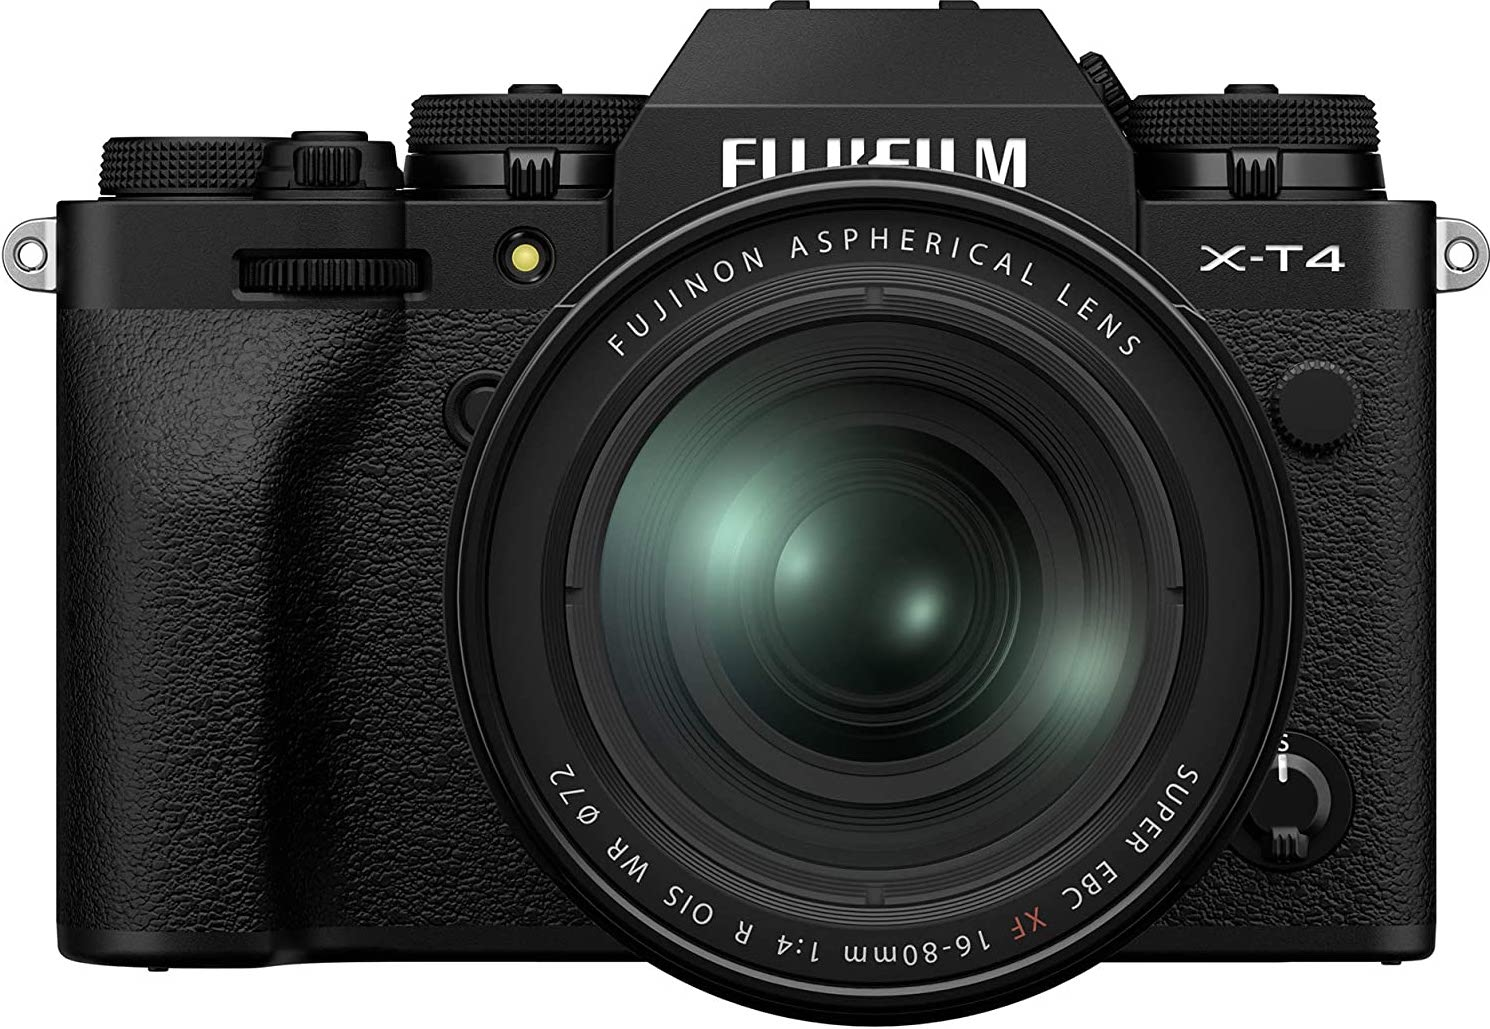 Fujifilm Xt4 With Kit Lens Render Cropped